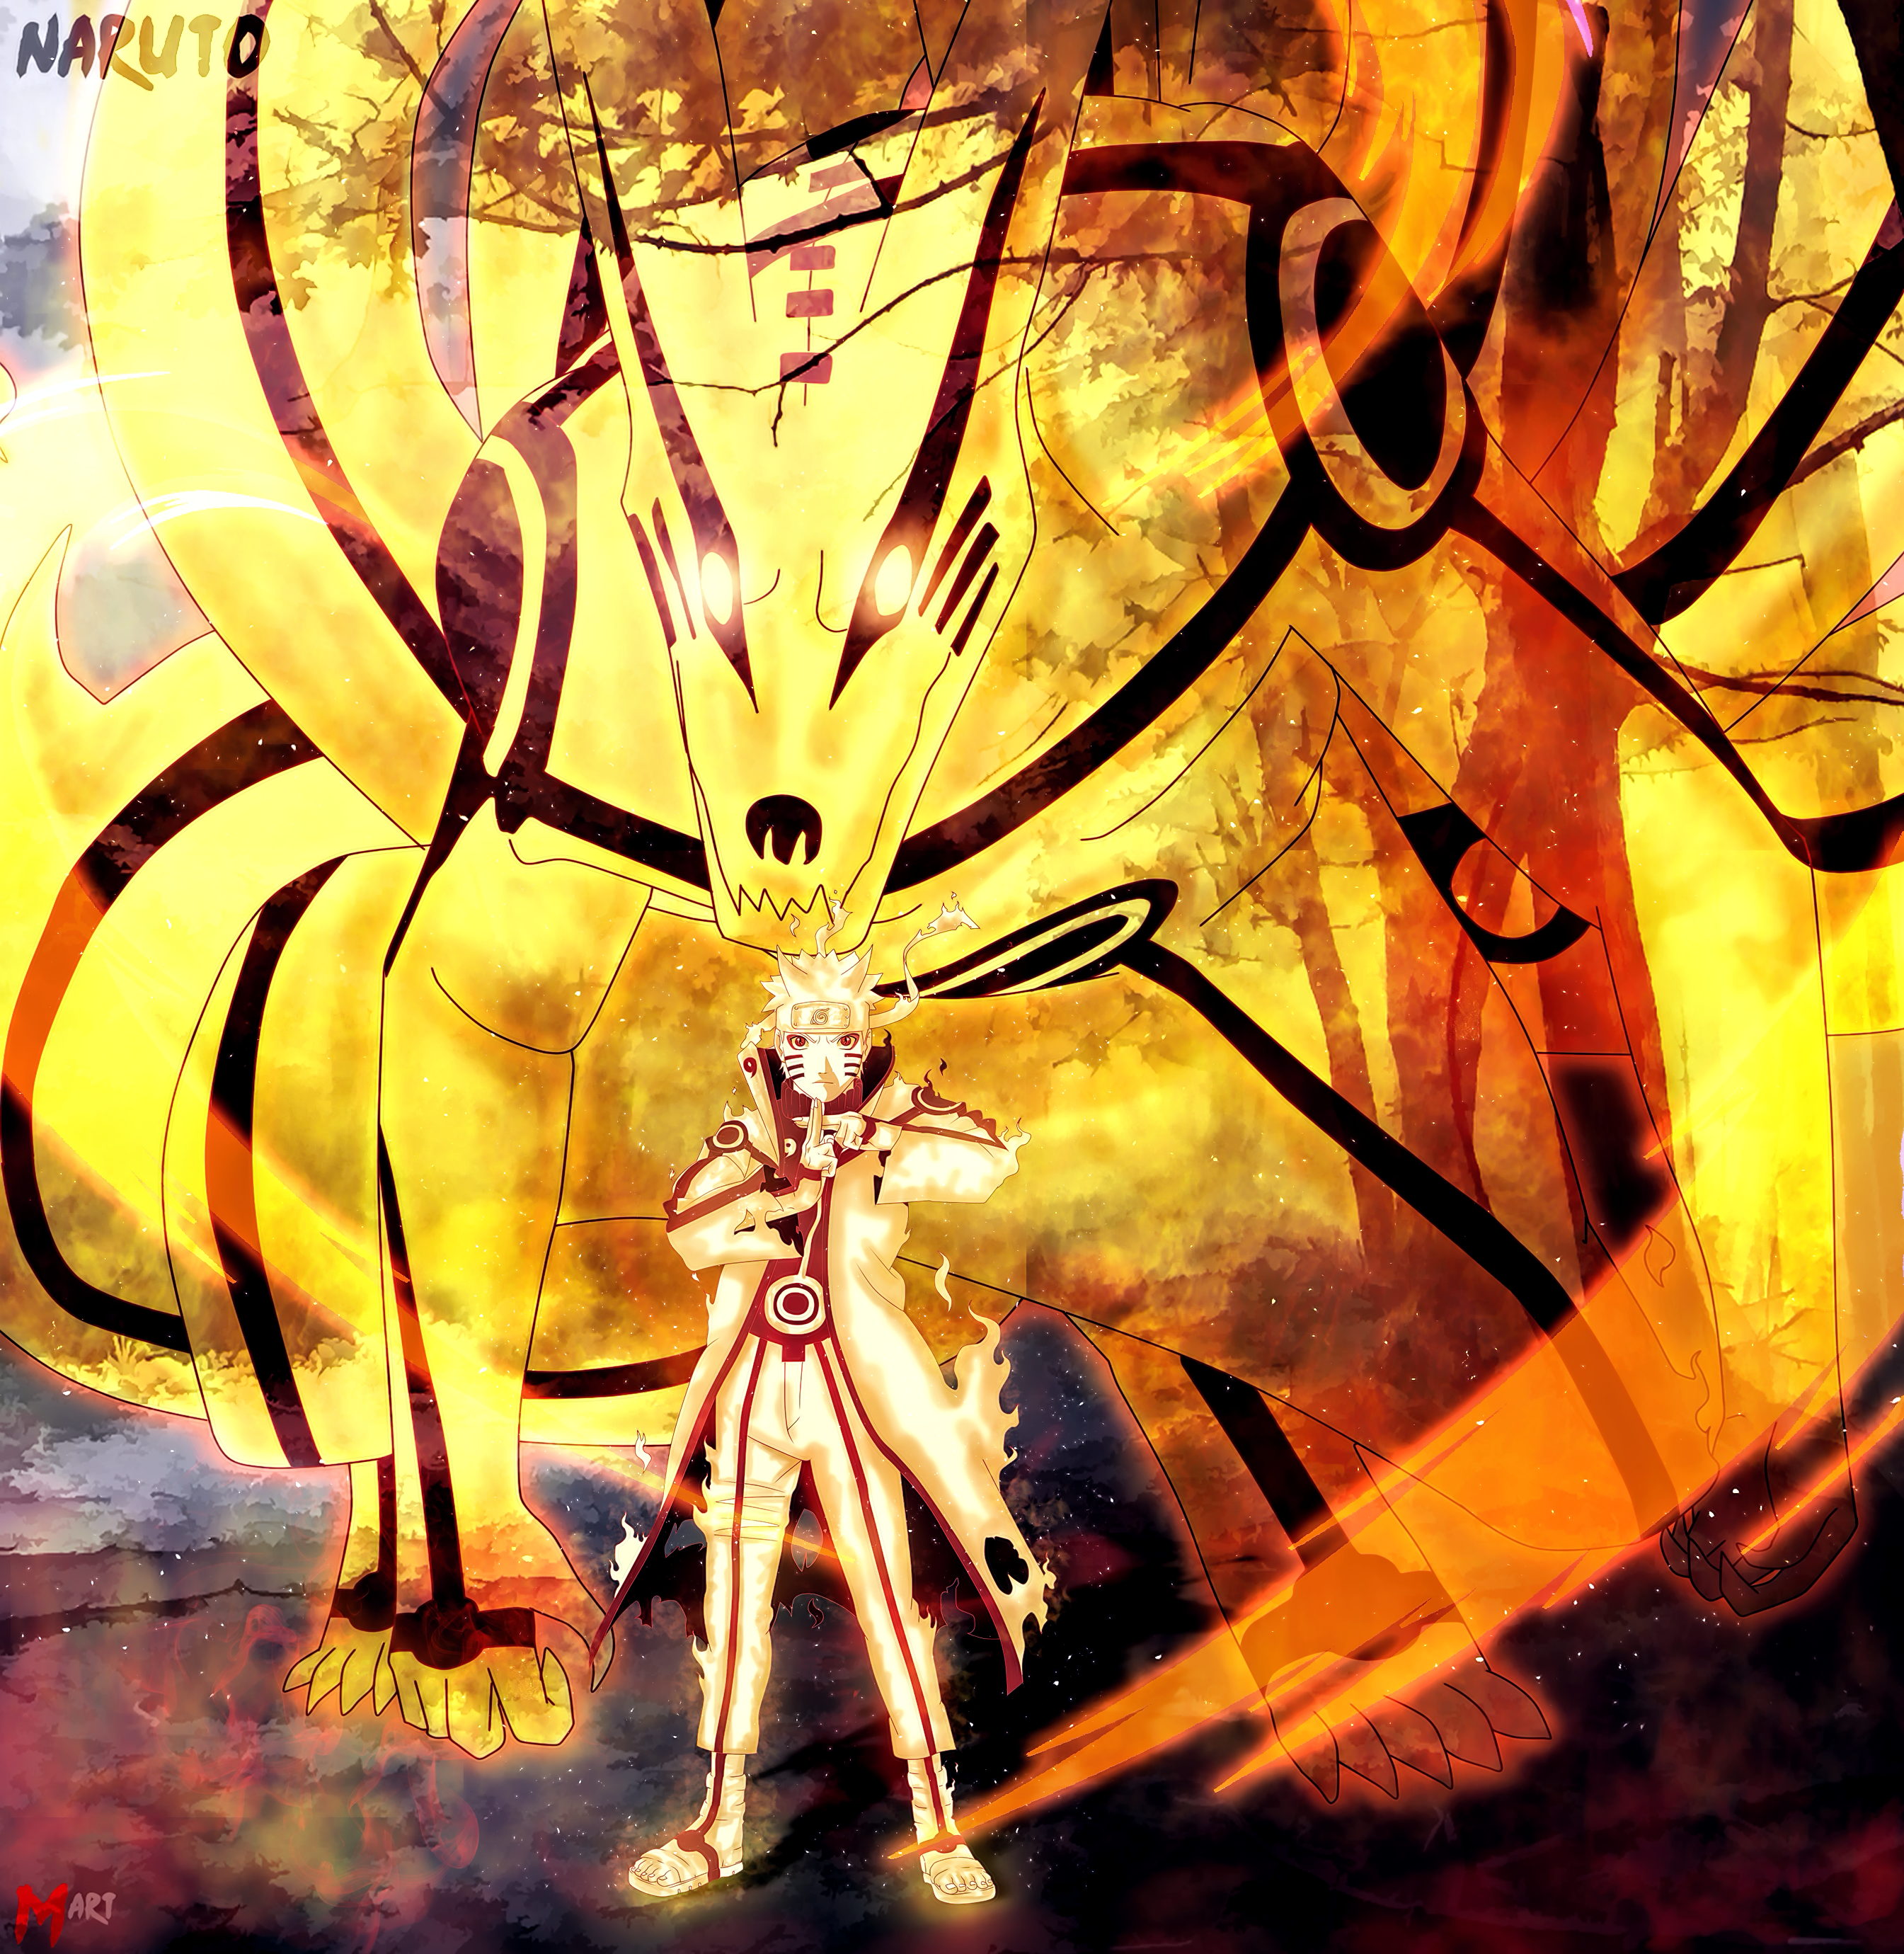 Naruto Sage Bijuu Mode And Kurama By MArttist On DeviantArt